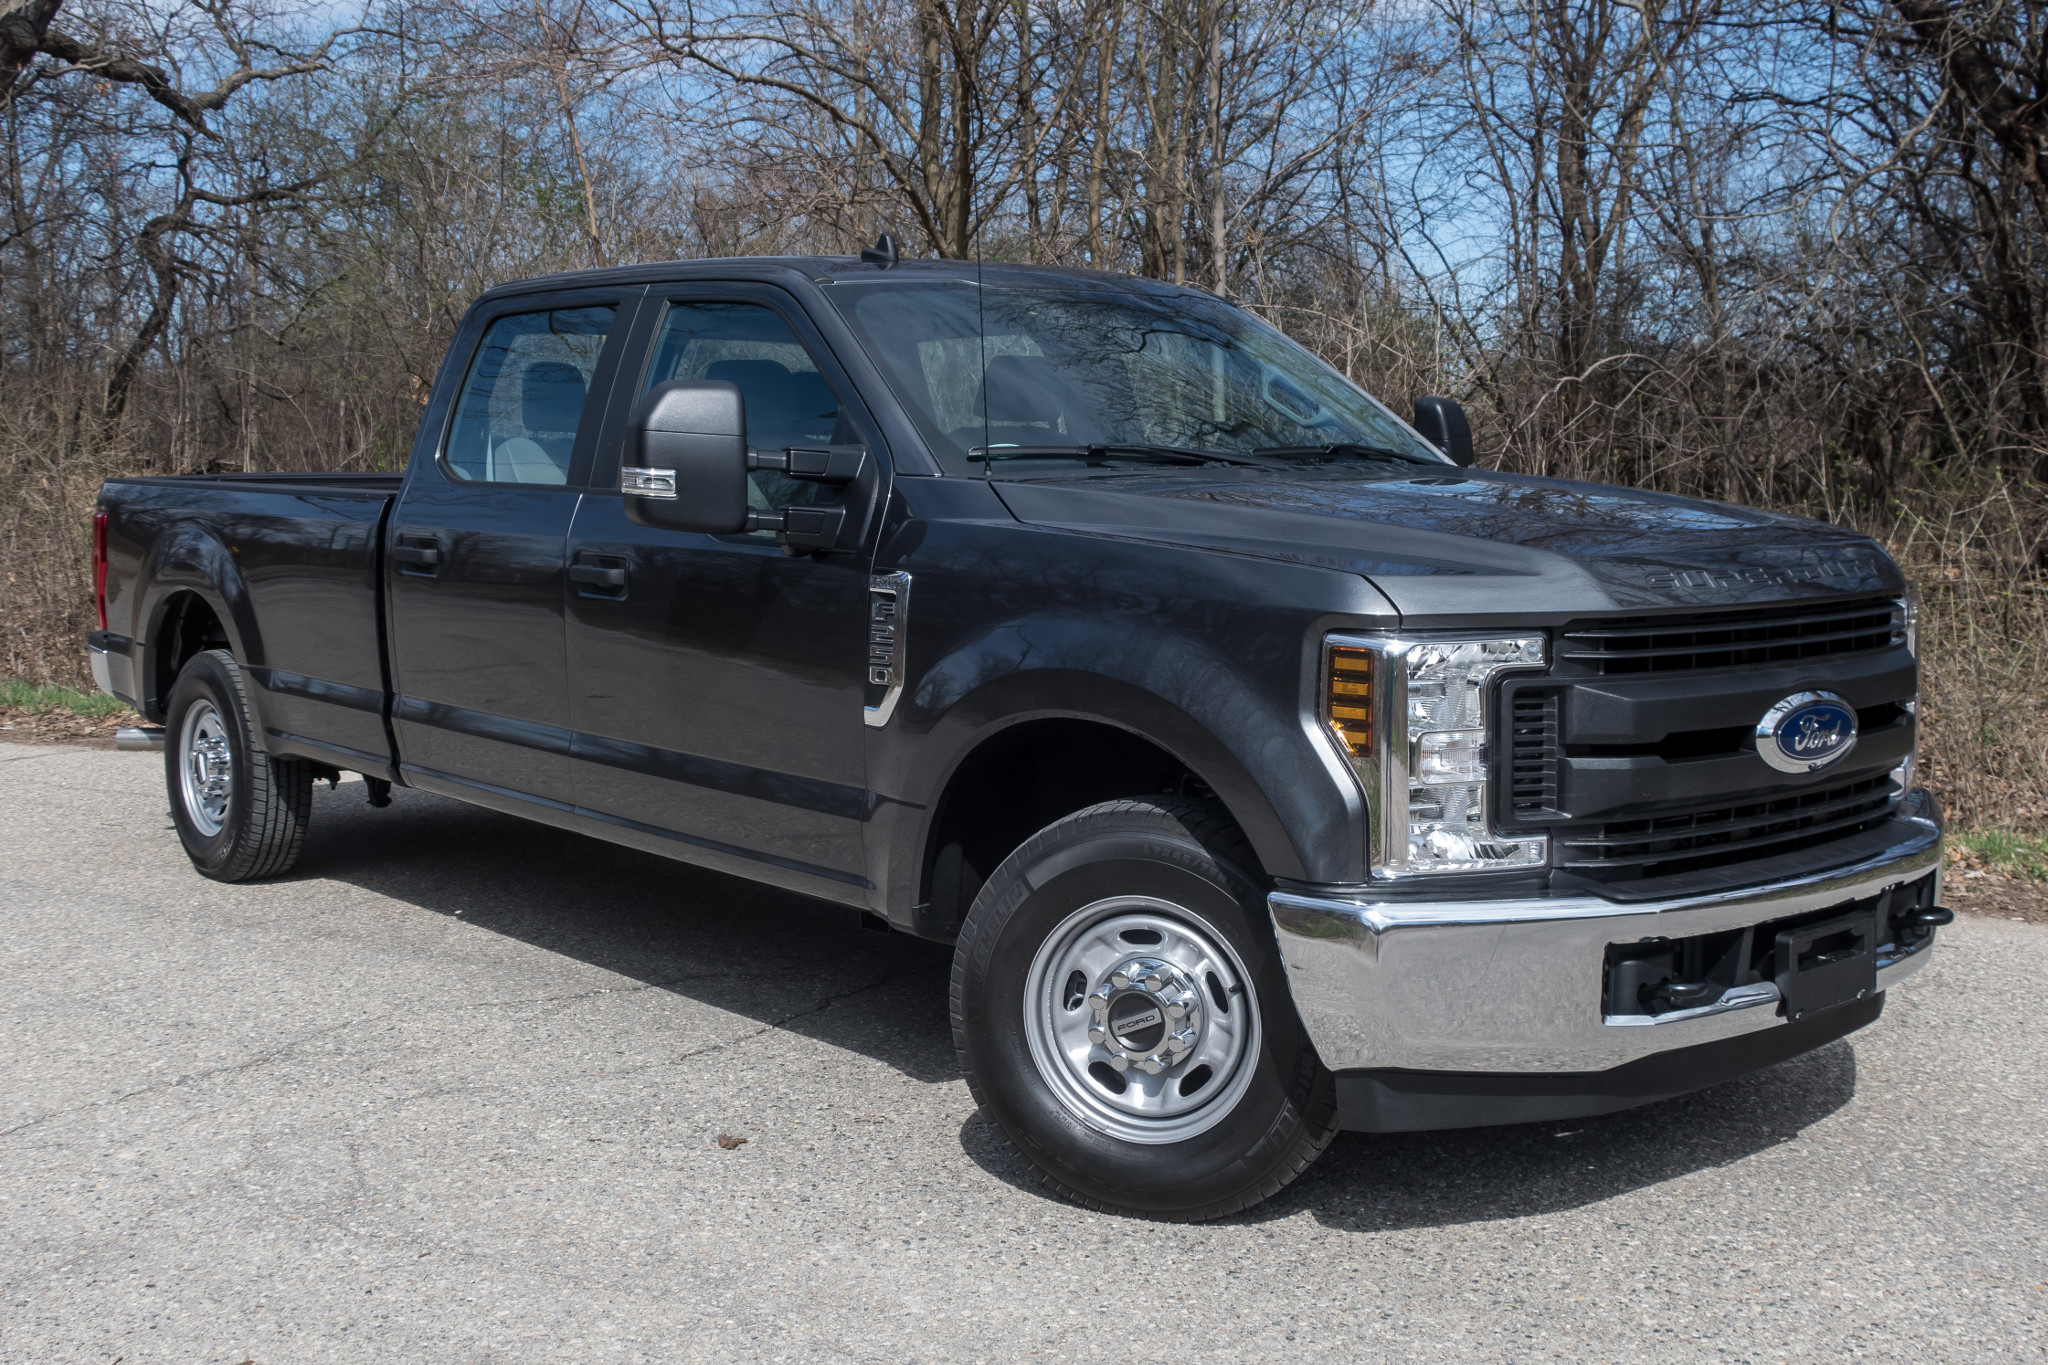 2019 Ford F-250 Super Duty XL Review: Everything You Need, Nothing You Don't